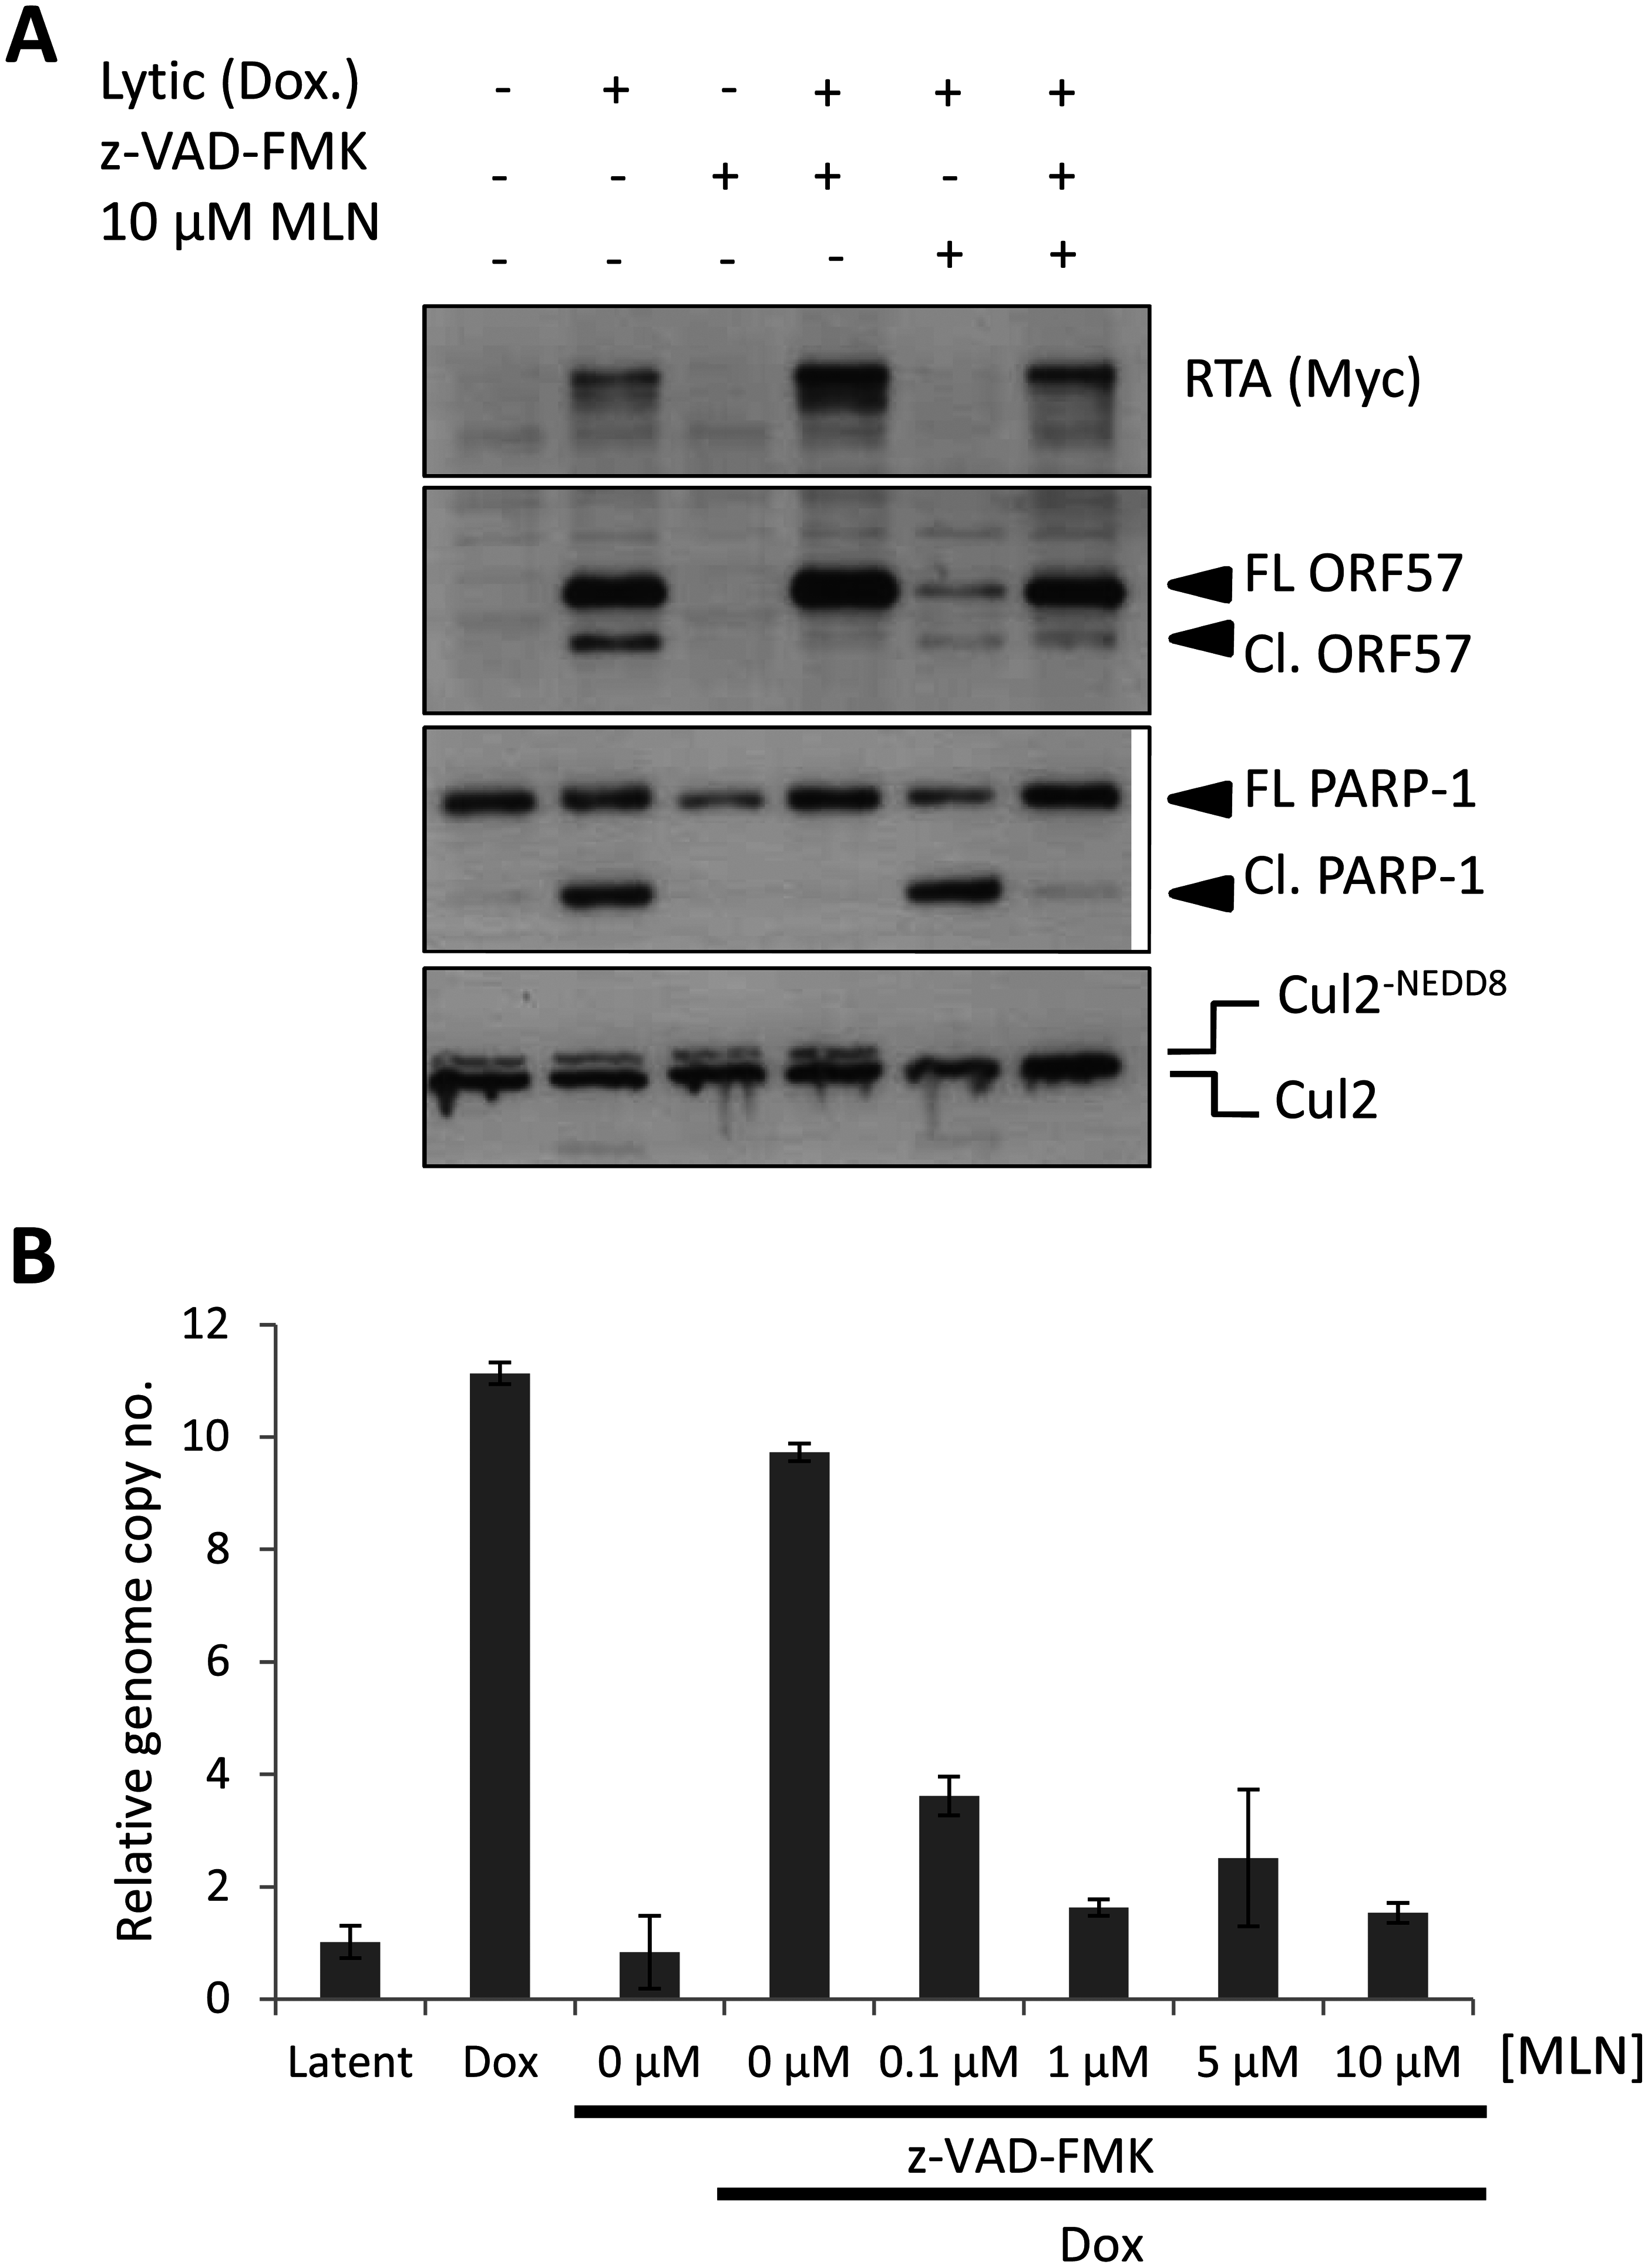 Inhibiting MLN4924-induced apoptosis does not restore lytic reactivation.